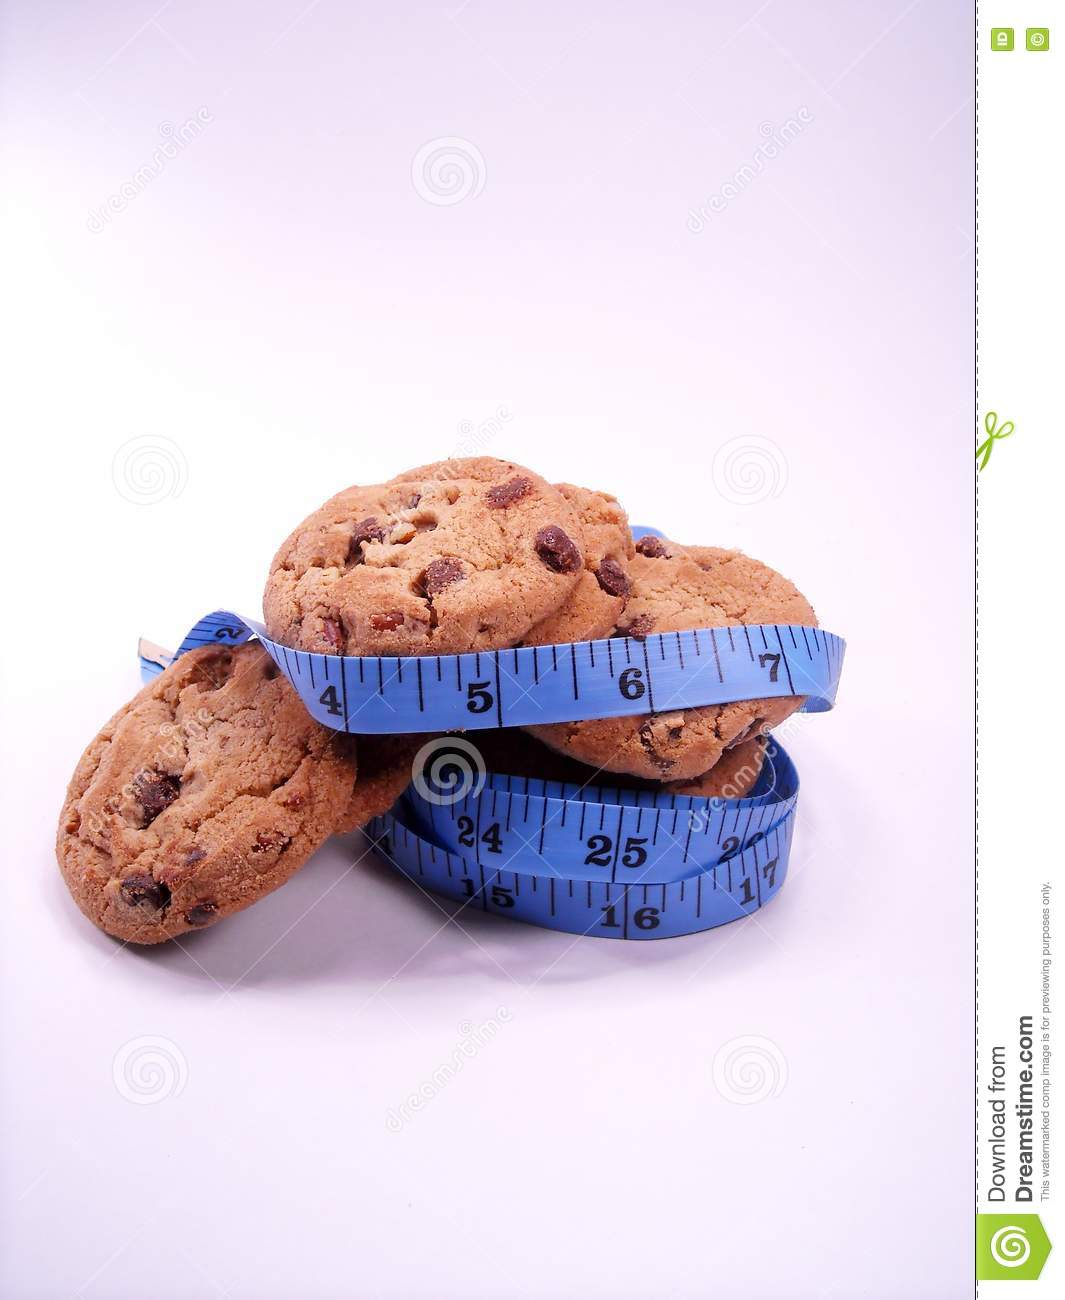 Step-by-Step: Dr. Siegal's COOKIE DIET Weight-Loss Plans